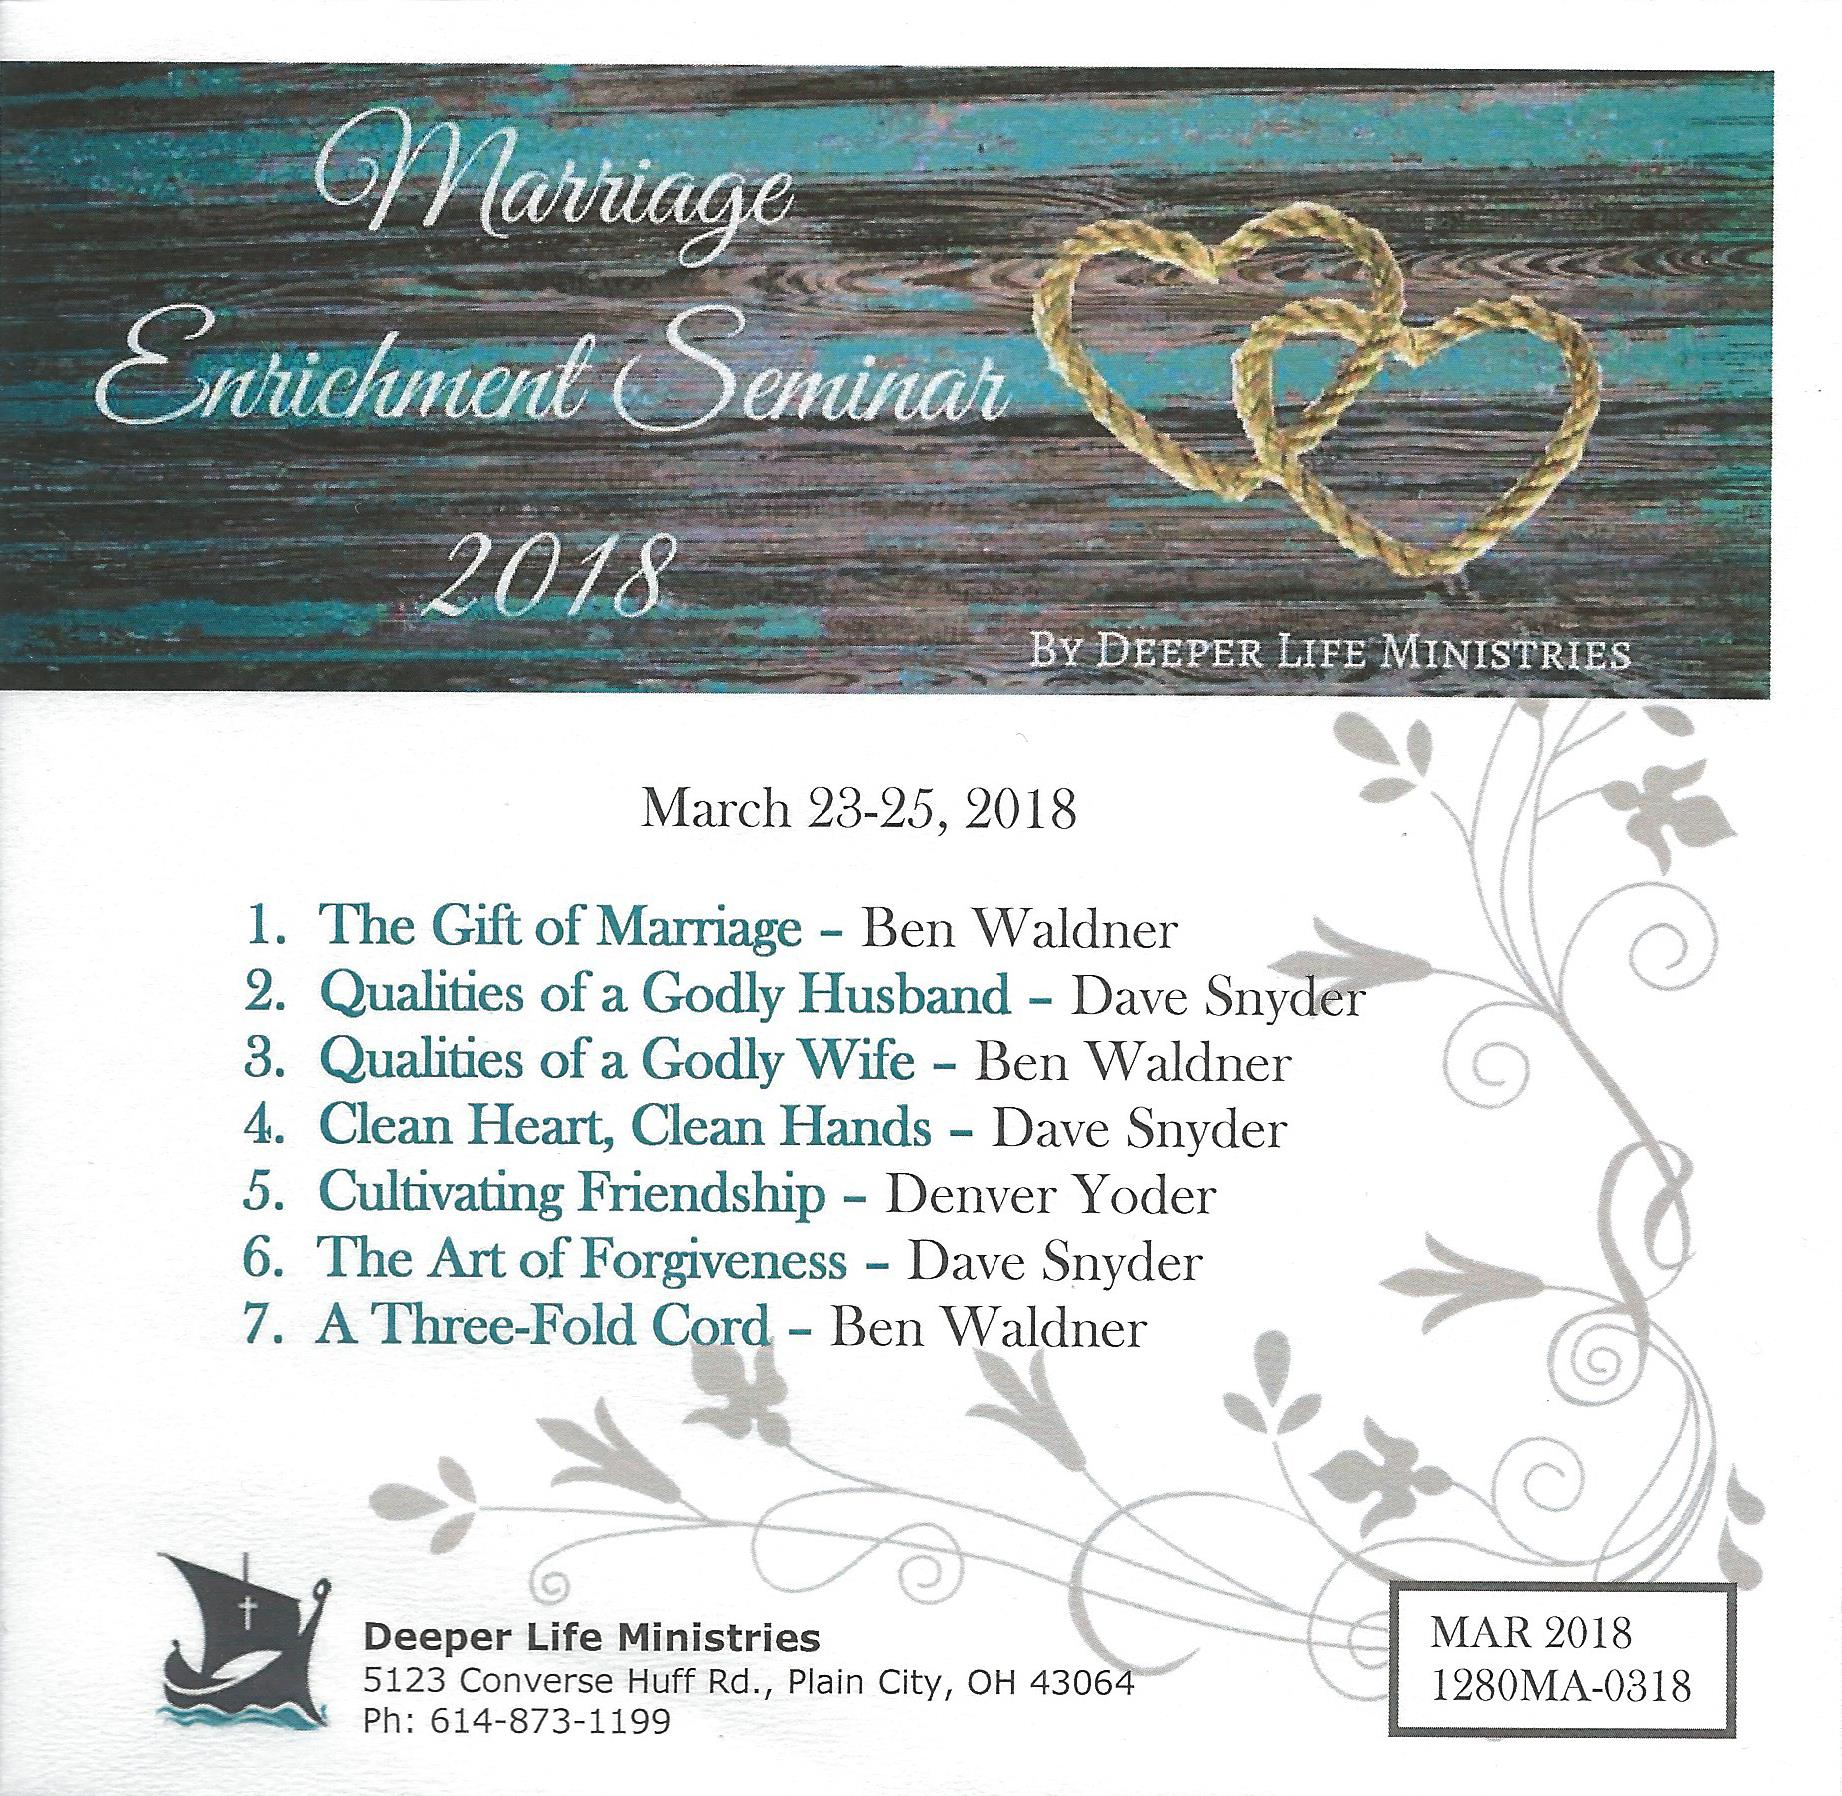 MARRIAGE ENRICHMENT SEMINAR 2018 7 CD Album